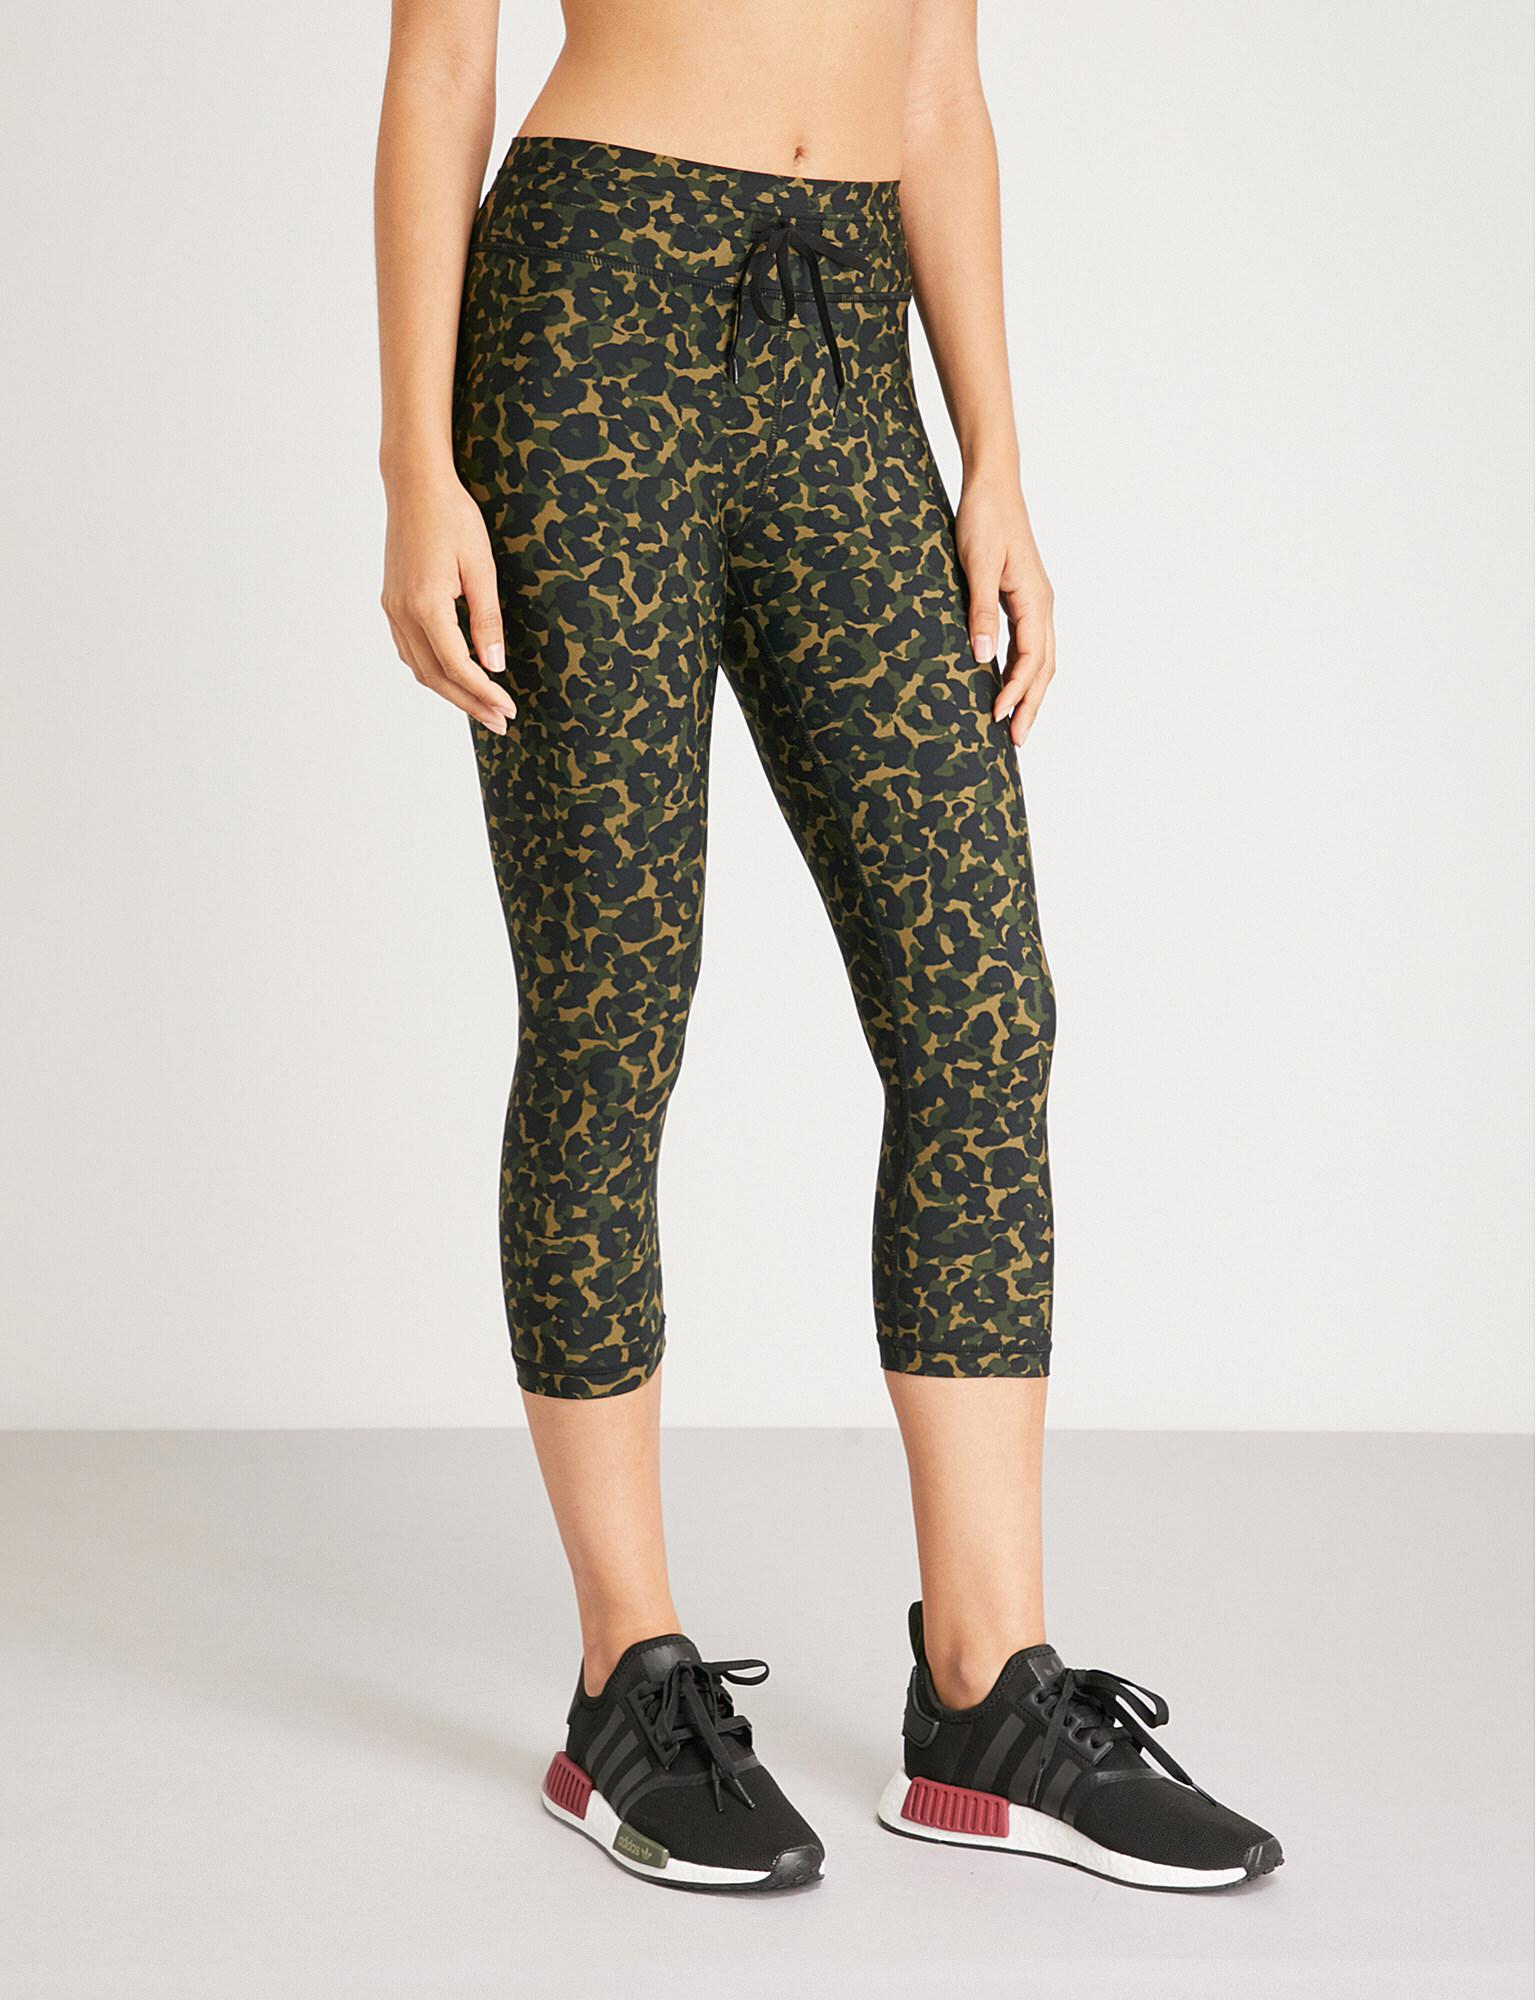 The Upside Womens Green Nyc Leopard Camo Print Stretch Jersey Leggings